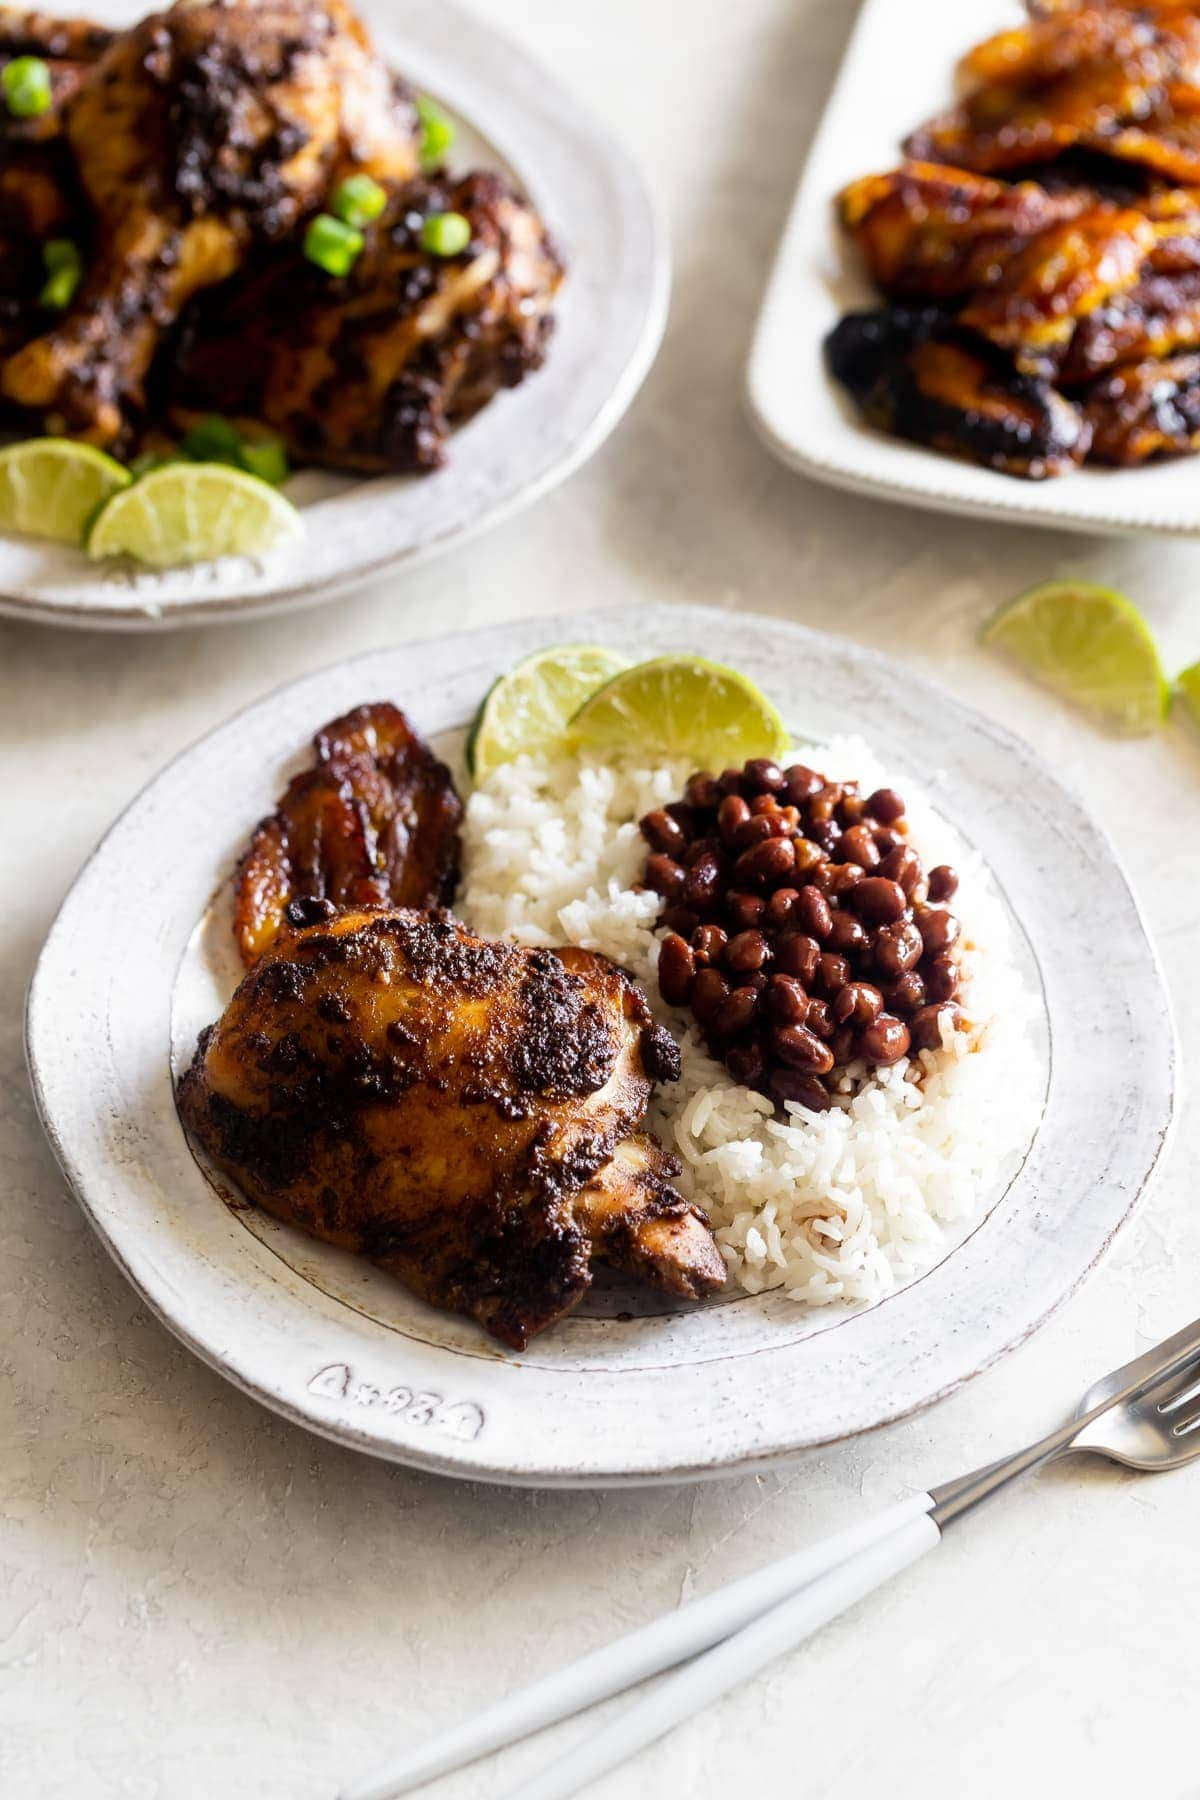 jerk chicken with a side of white rice, black beans, sweet plantains, and lime wedges on a white plate